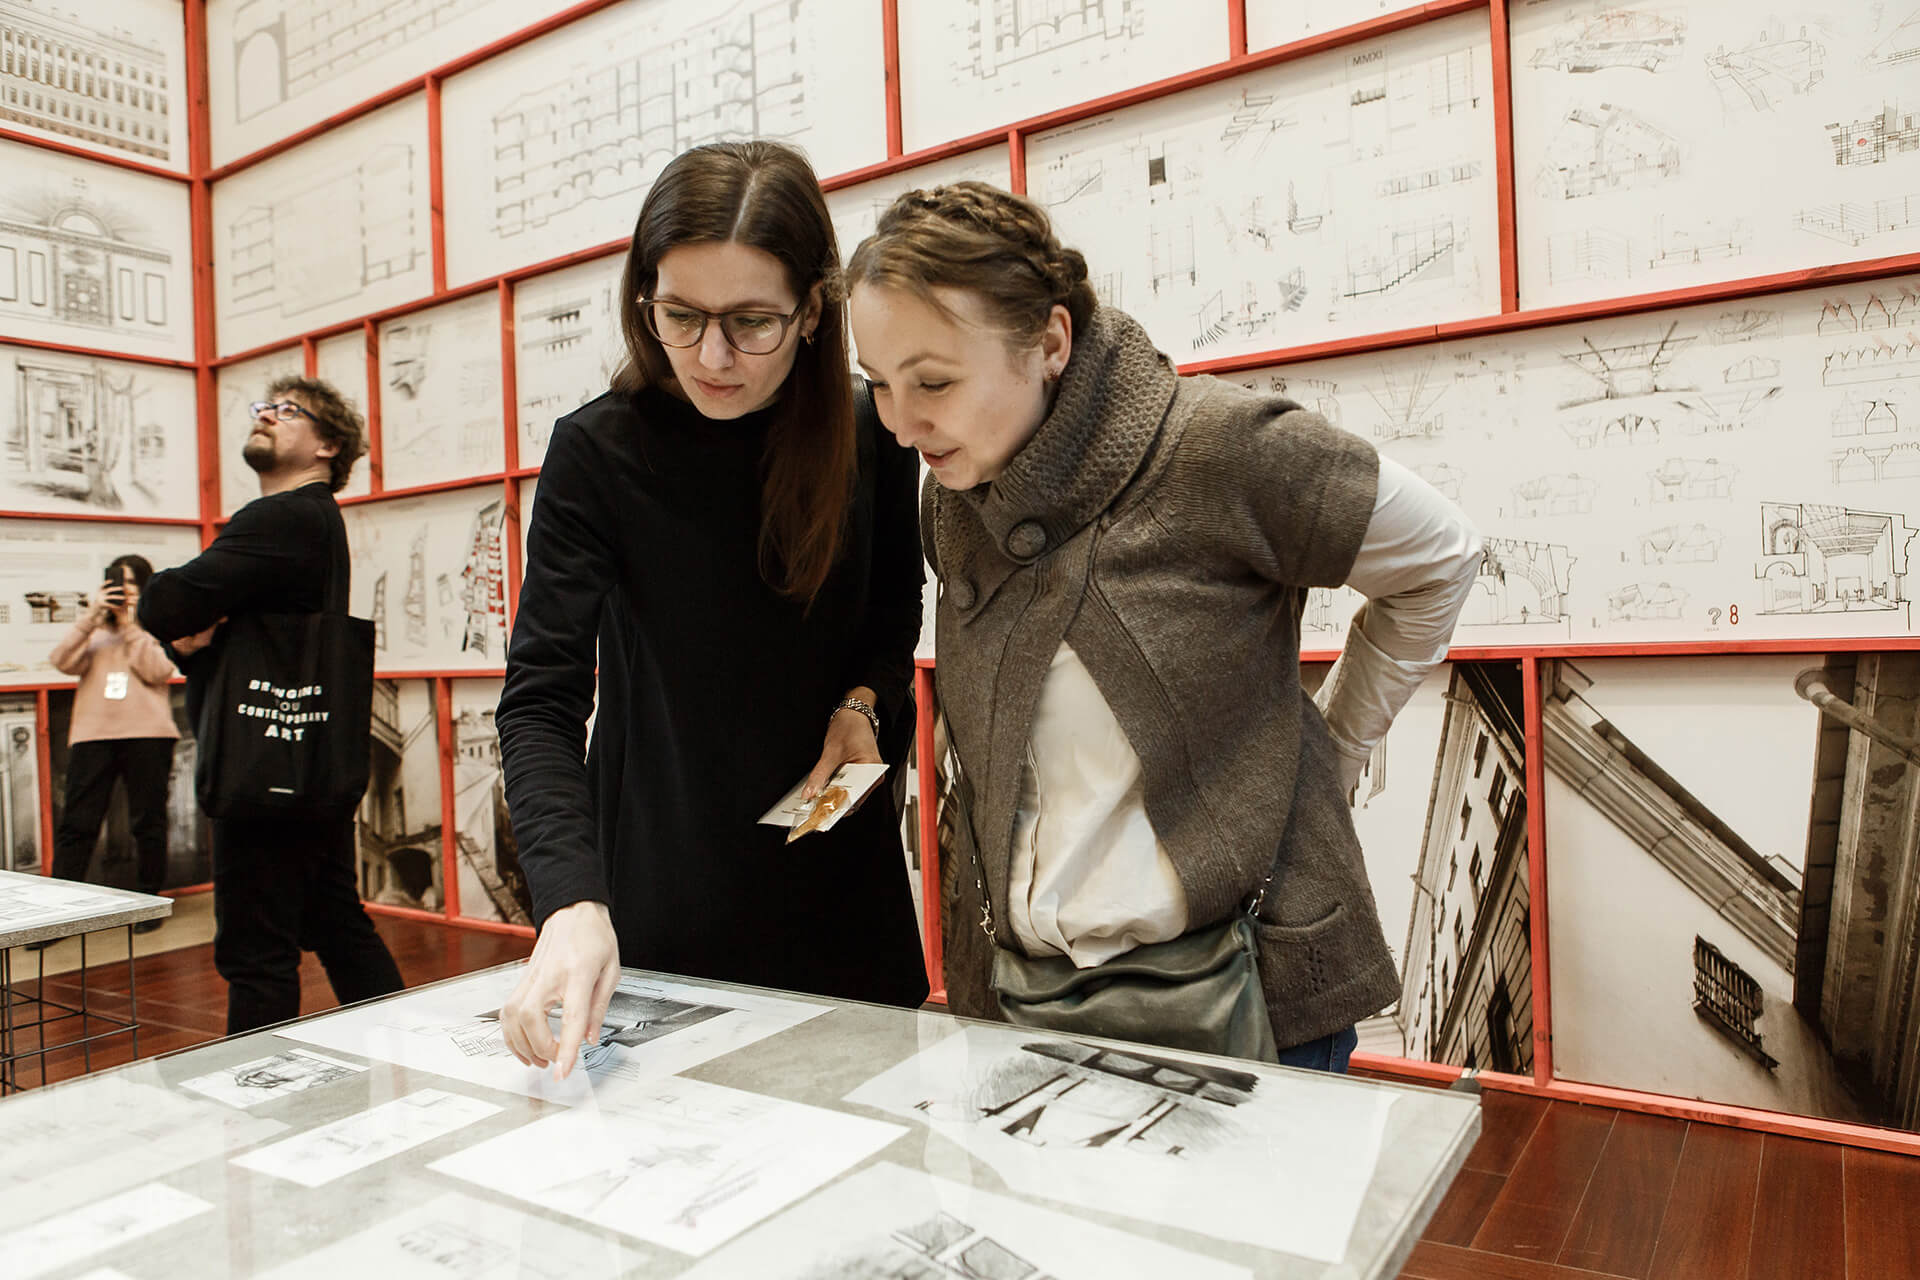 The Enfilade exhibition immerses us into architect Nikita Yaveyn's process of 'reassembling' | Nikita Yaveyn | STIRworld